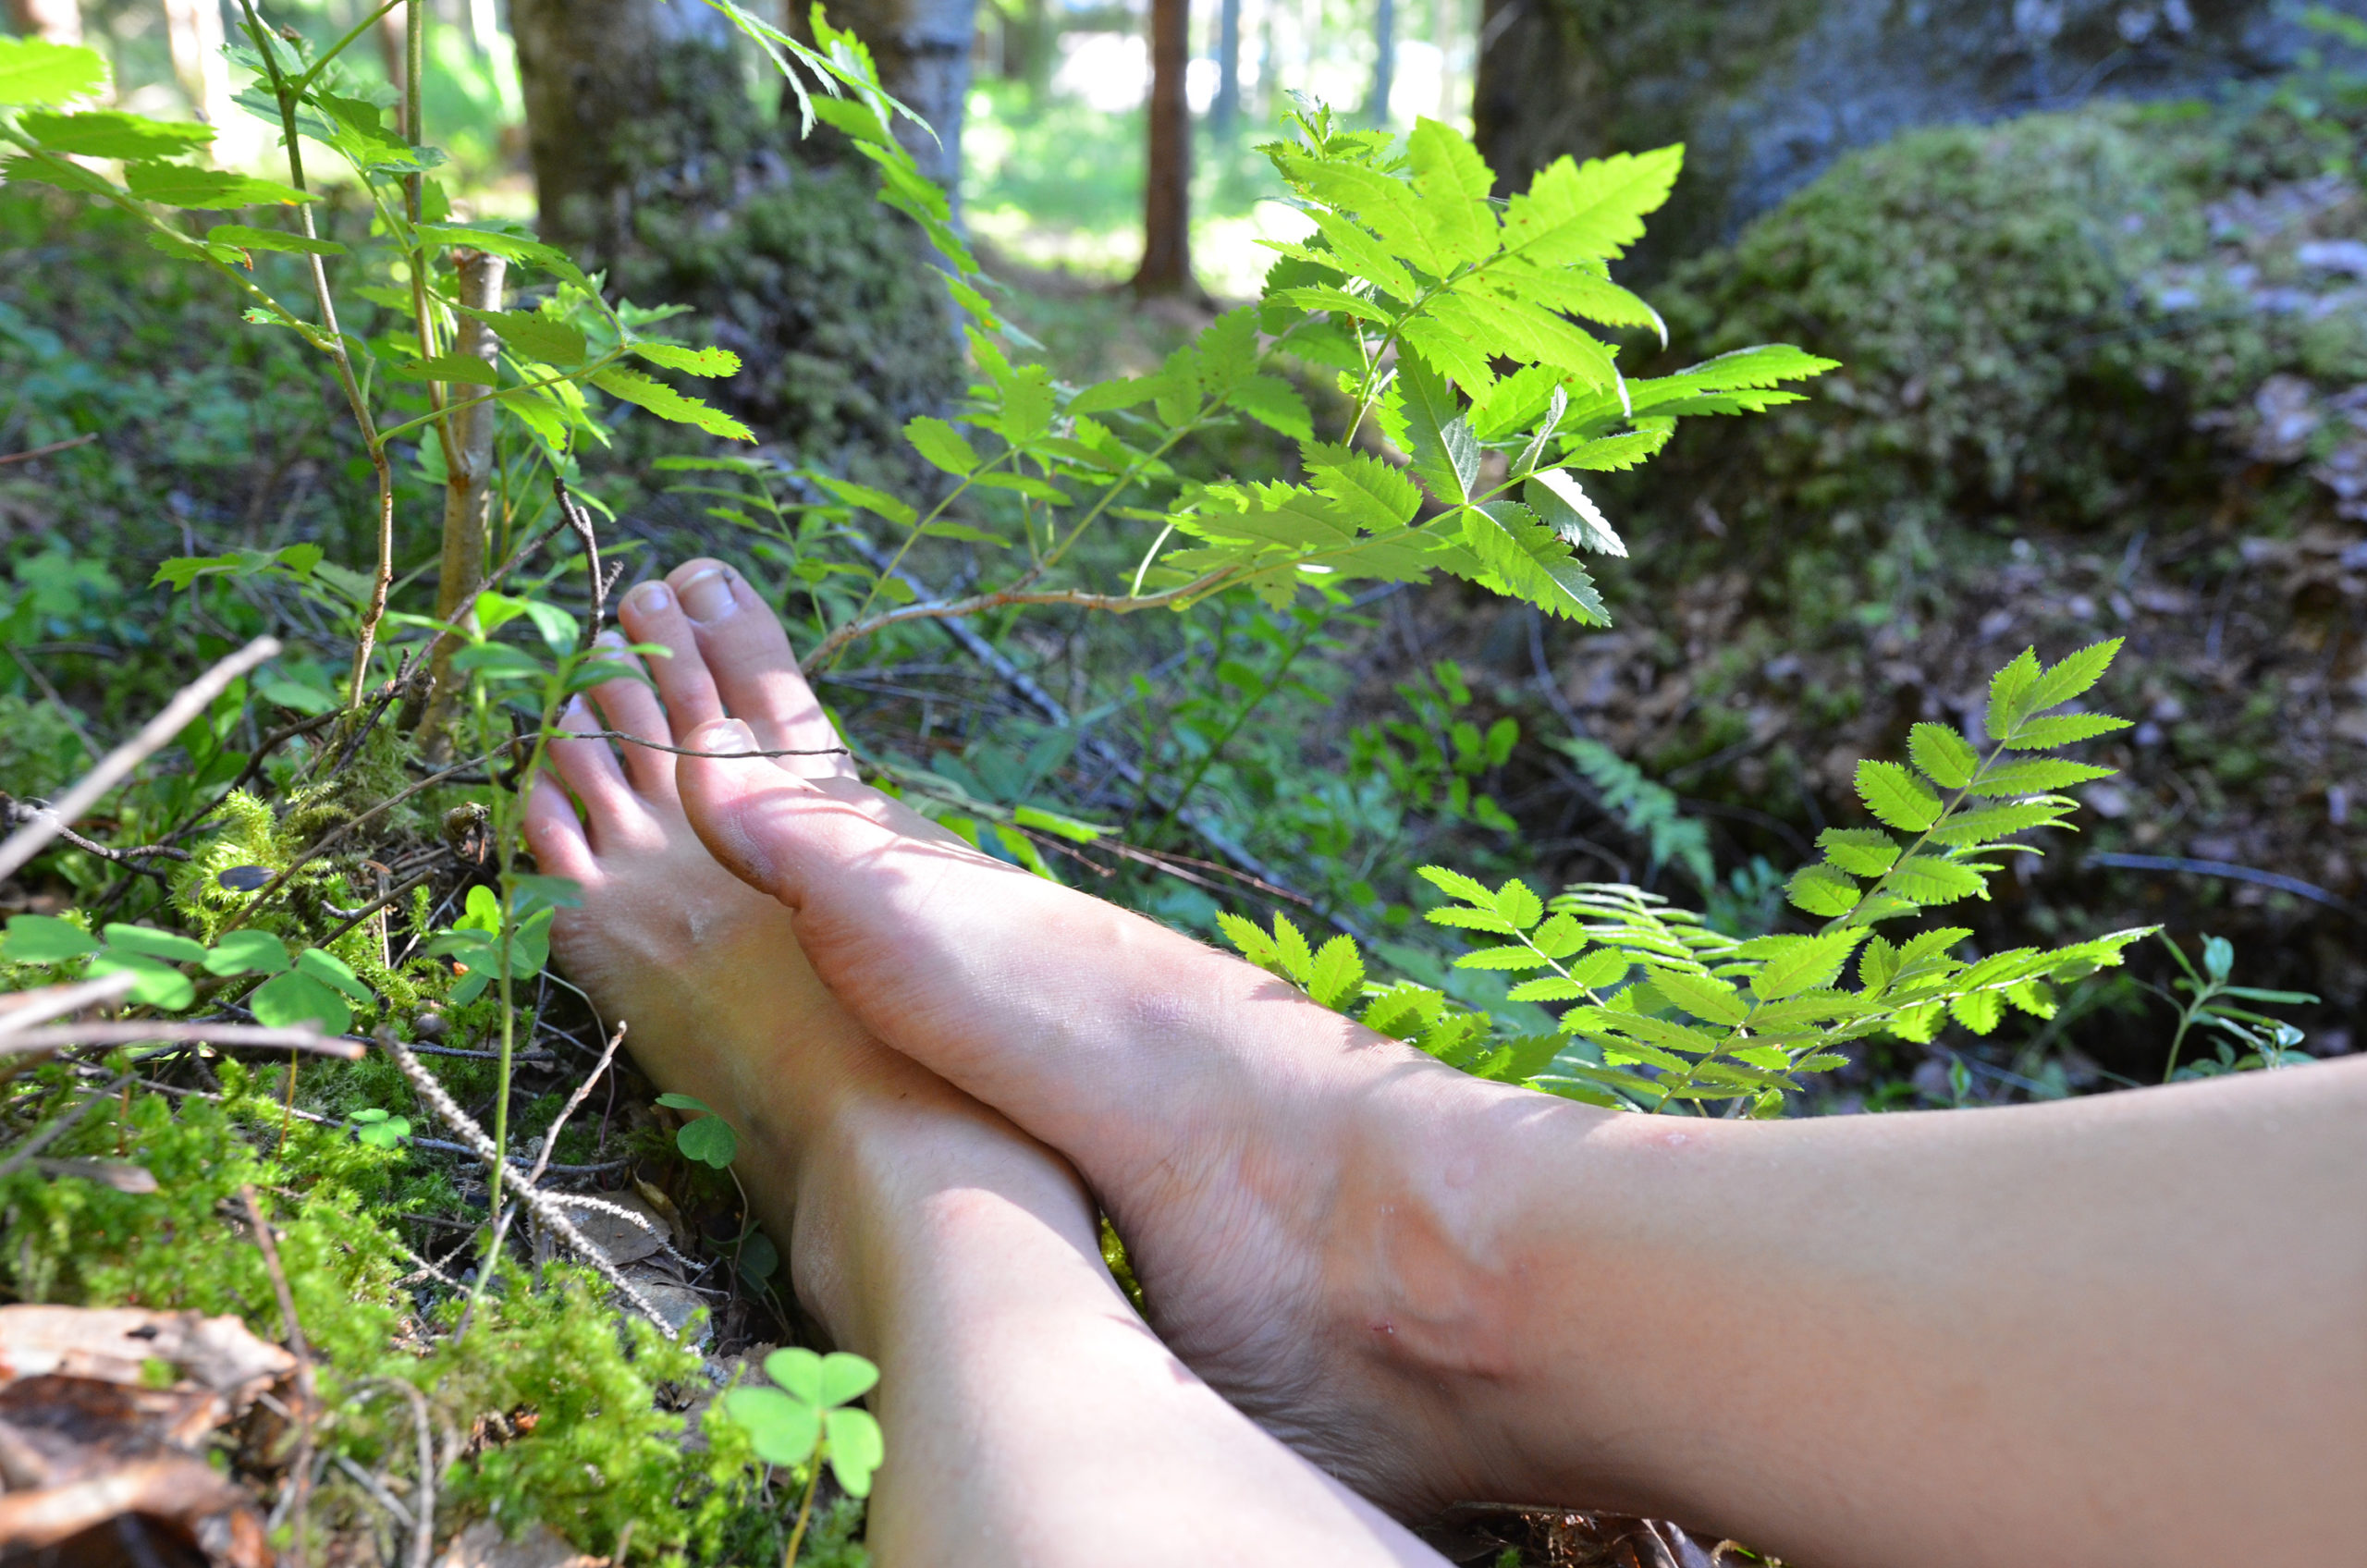 The beauty free, natural movement in the forest